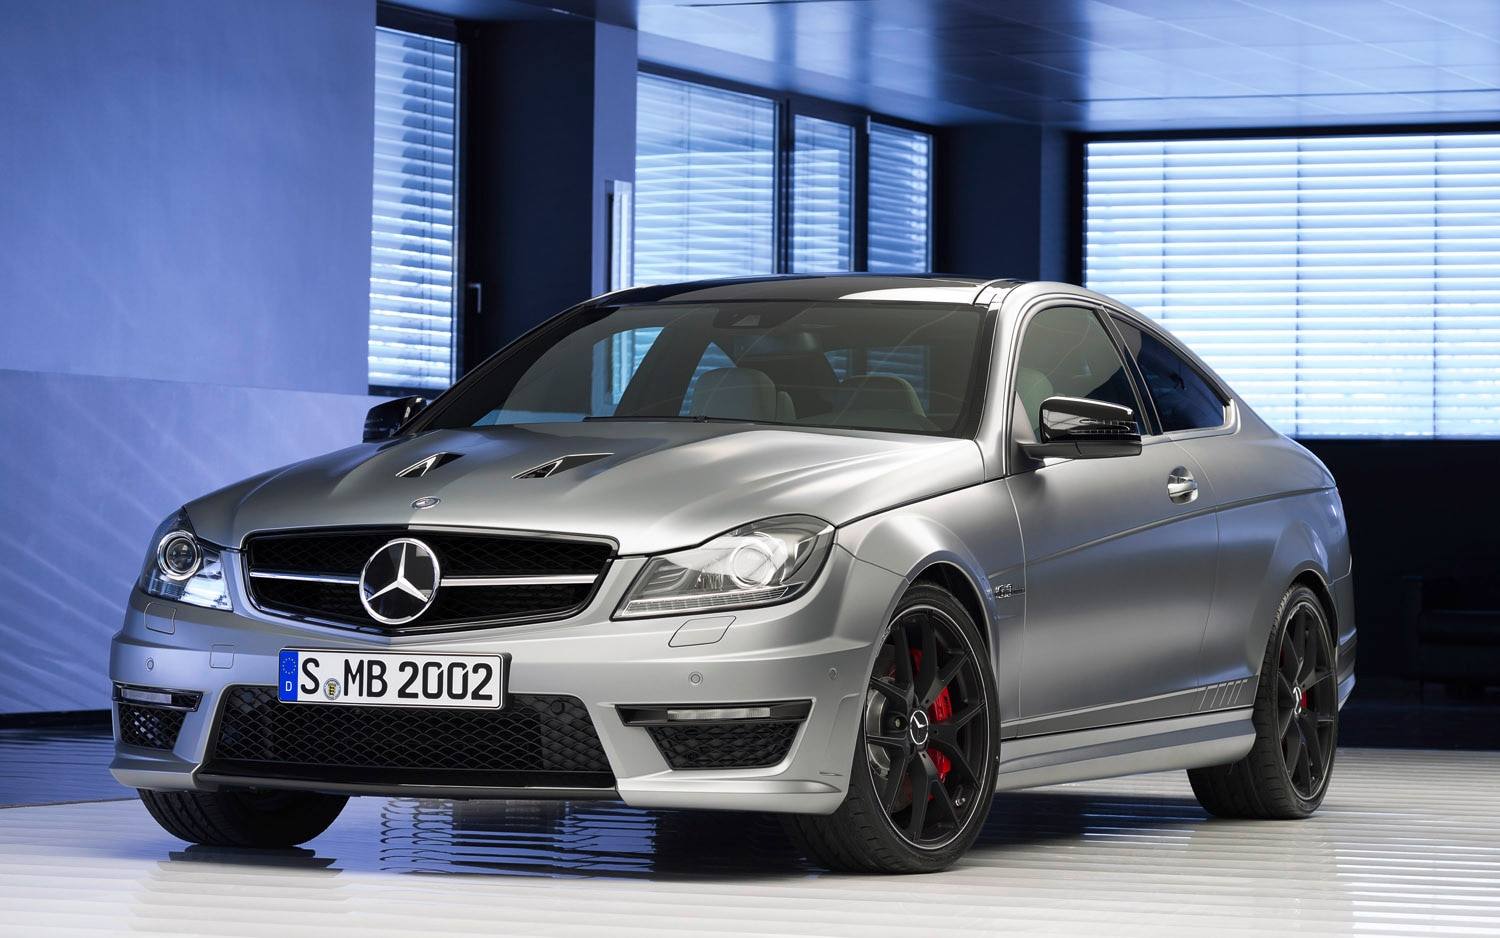 2014 Mercedes Benz C63 AMG Edition 507 Coupe Front Three Quarter 31